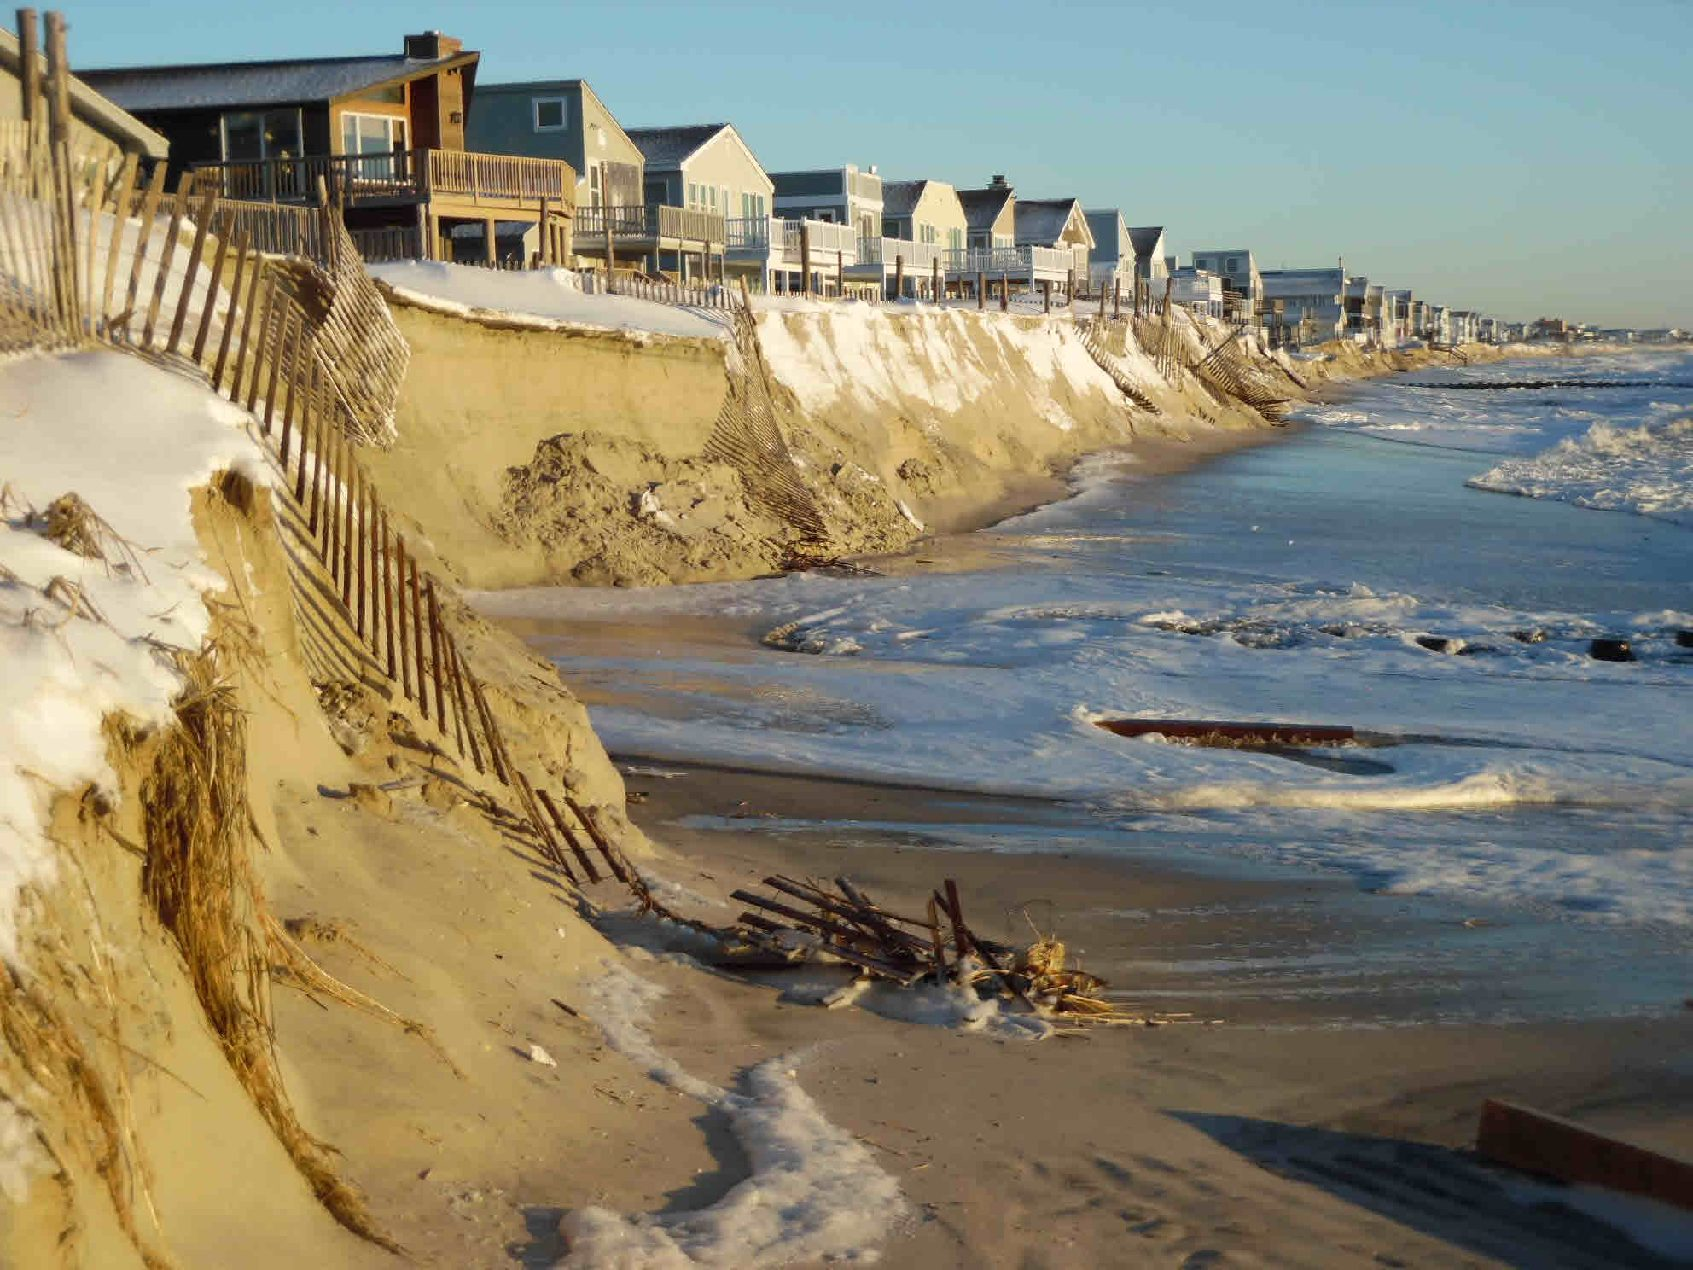 As Ocean Temperatures Warm, The Cost Of Rebuilding The Coastal Economy Will Rise